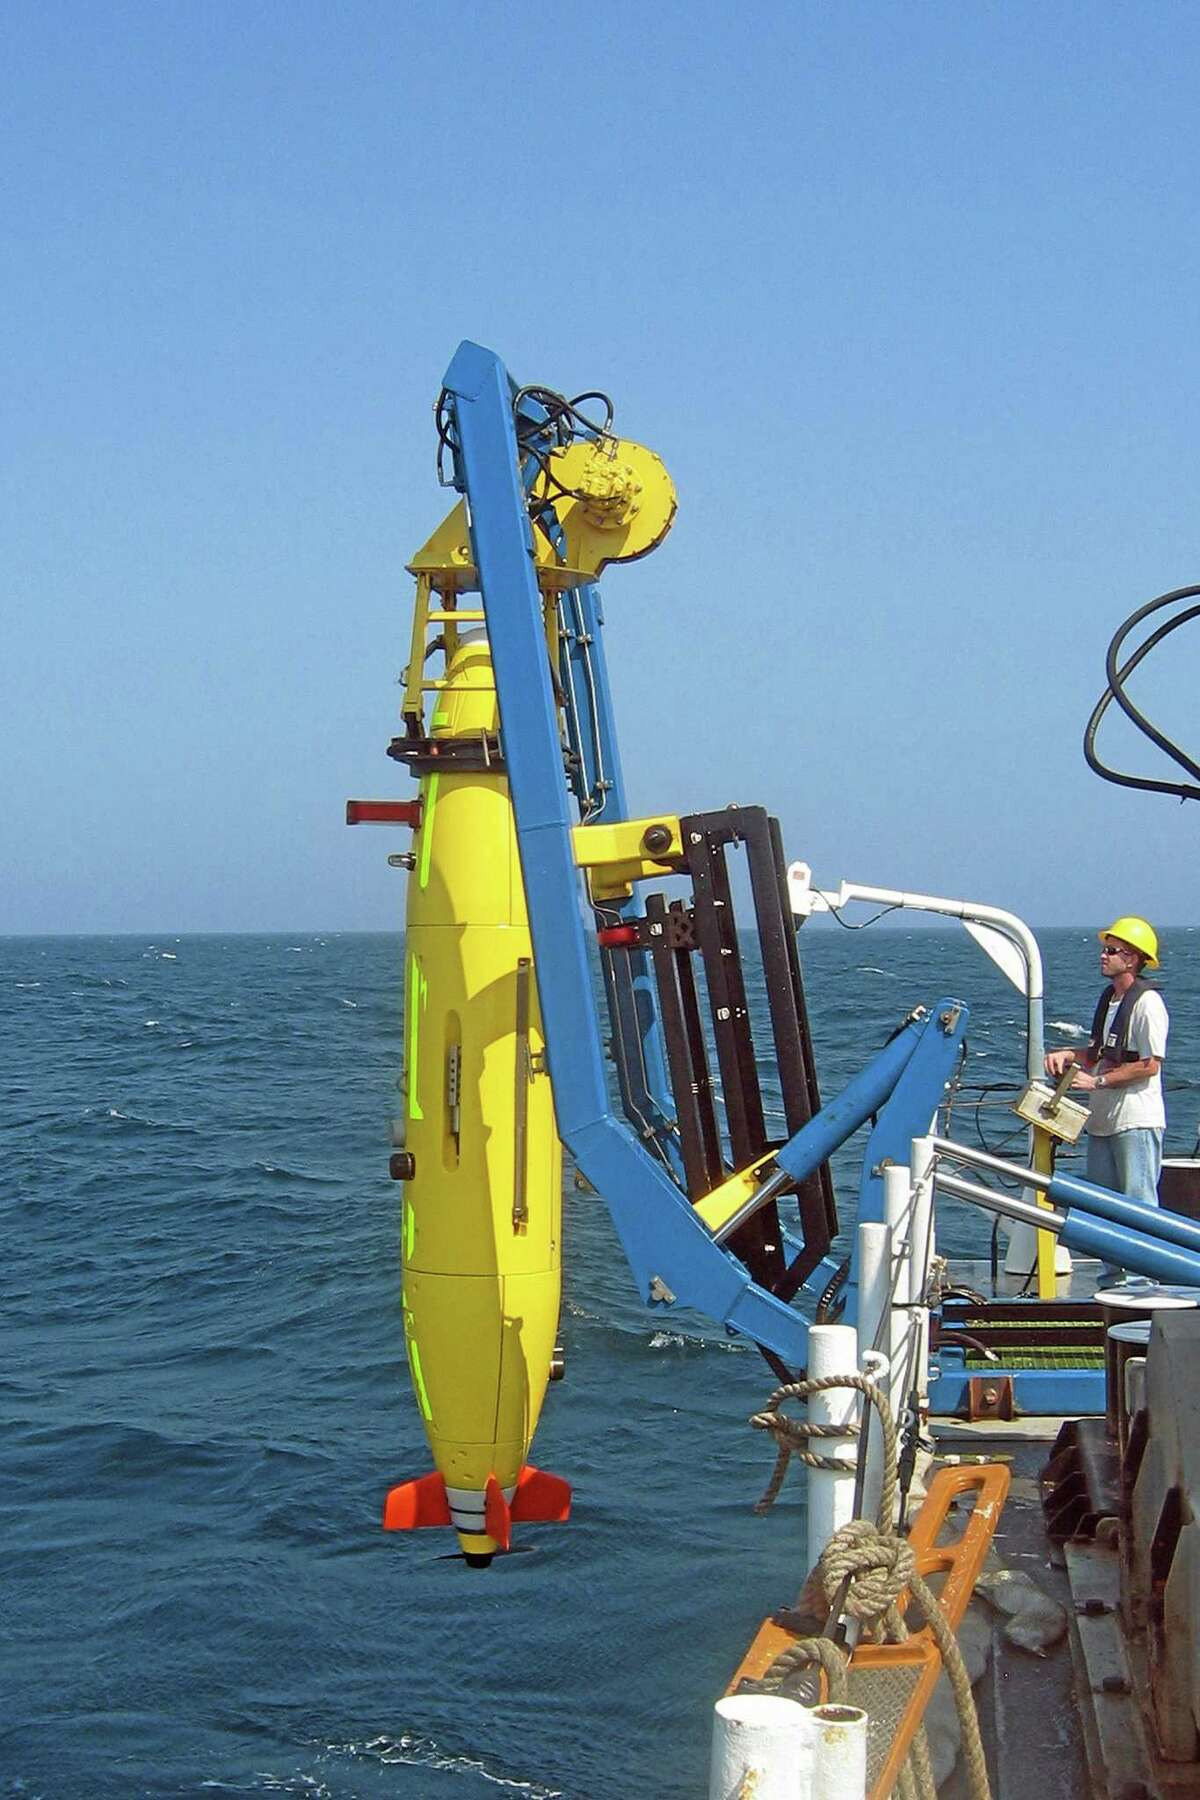 This undated photo provided on April 1, 2014 by Hydroid via the Woods Hole Oceanograhic Institute shows the REMUS 6000 unmanned sub being launched. Unmanned subs, also called autonomous underwater vehicles or AUVs, played a critical role in locating the wreckage of the lost Air France jet, two years after it crashed in the middle of the south Atlantic. The find allowed searchers to recover the black boxes that revealed the malfunctions behind the tragedy. (AP Photo/Hydroid)